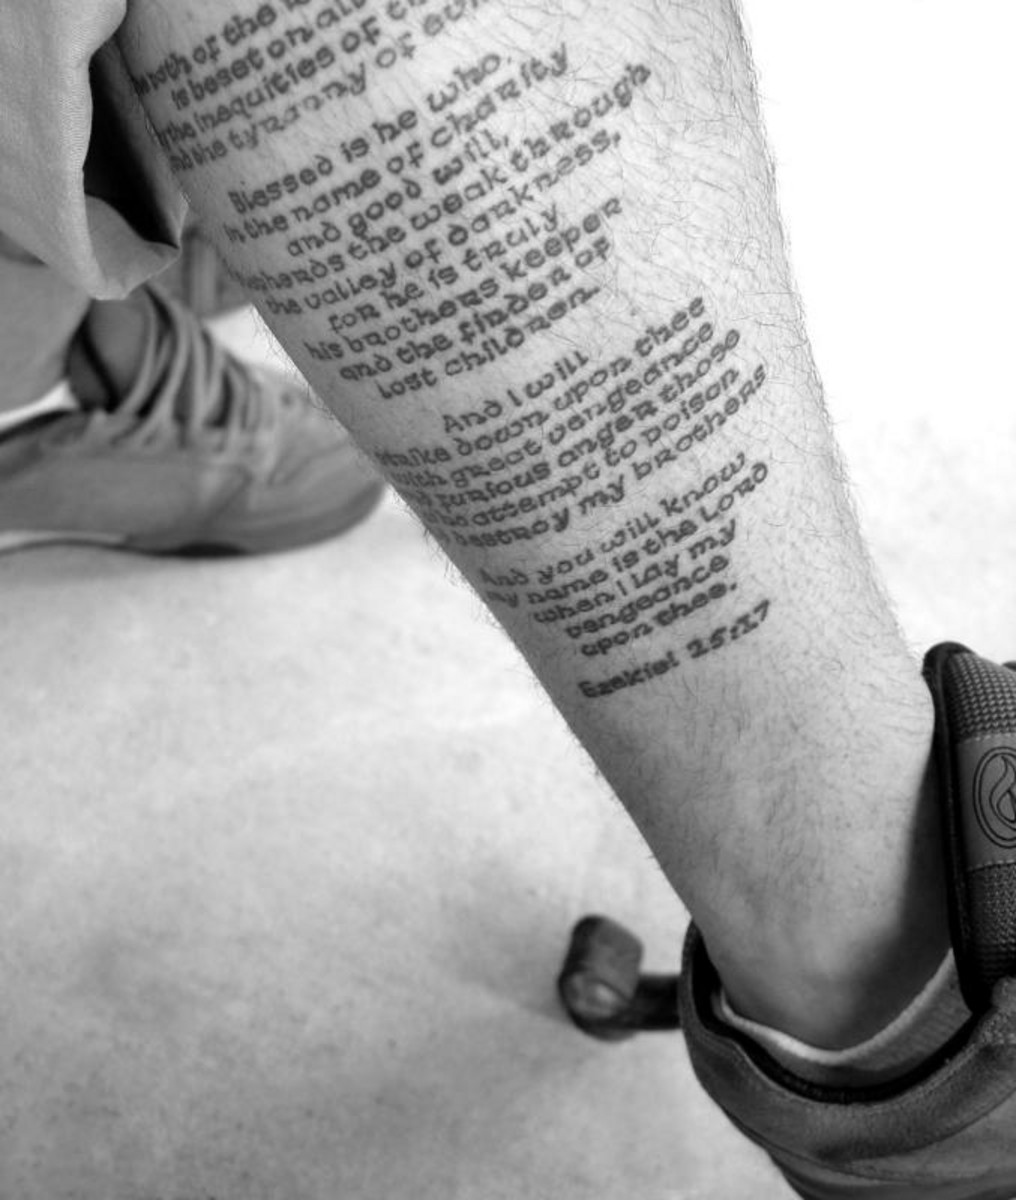 Quote Tattoos Design Idea For Woman And Men: Quote Tattoos Designs, Ideas And Meaning